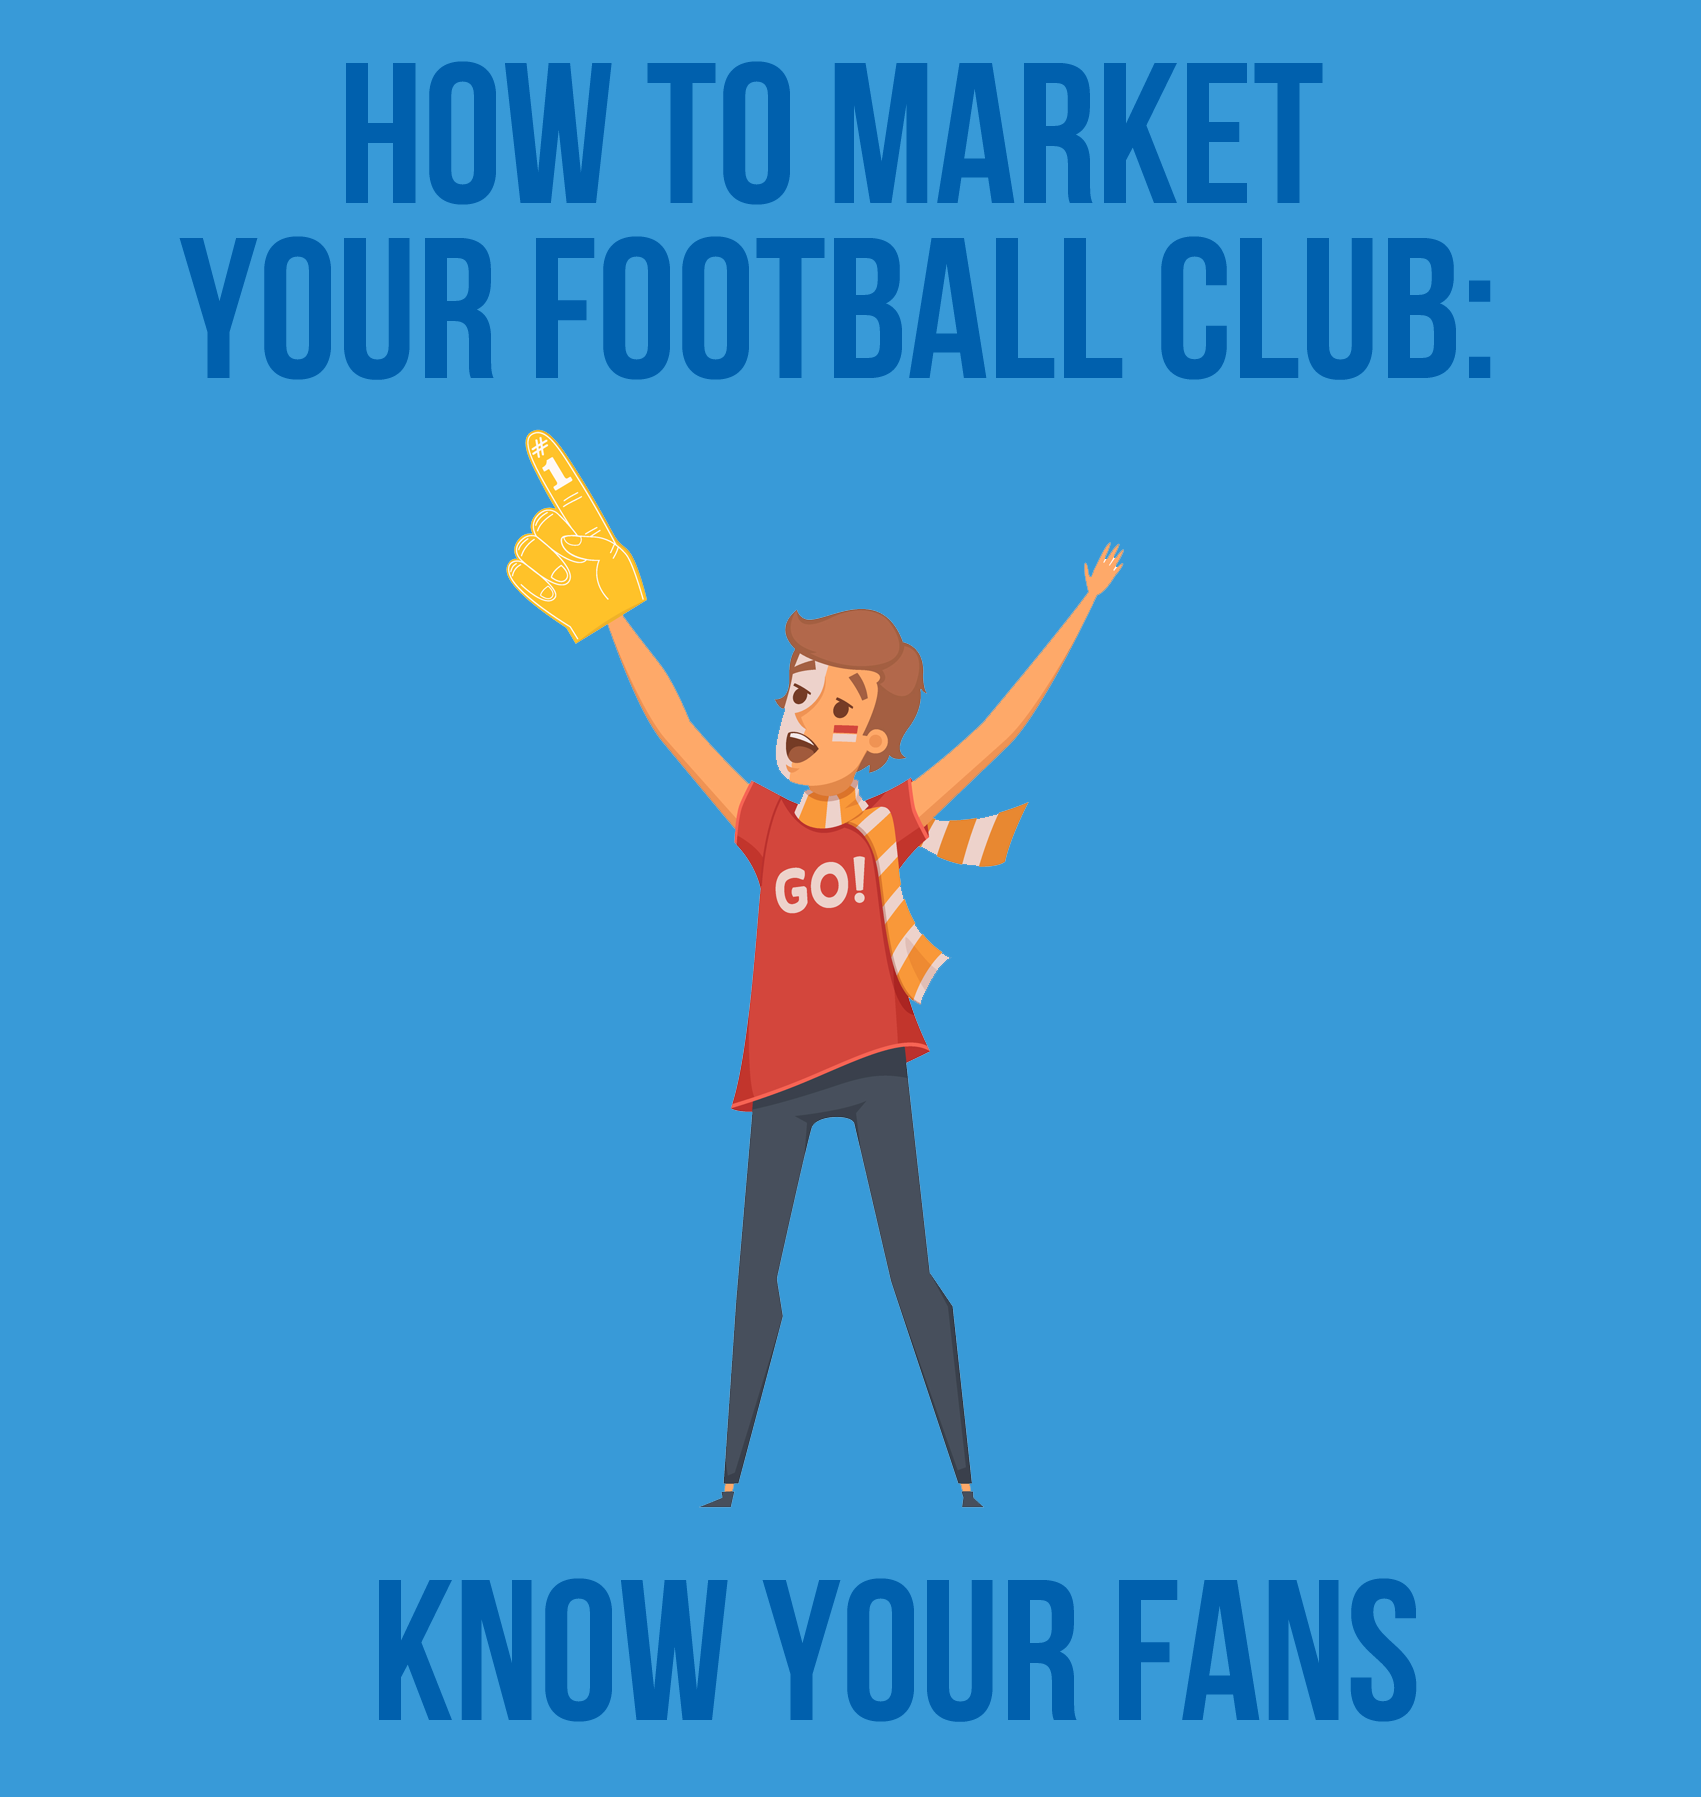 How to market your football club: Know your fans